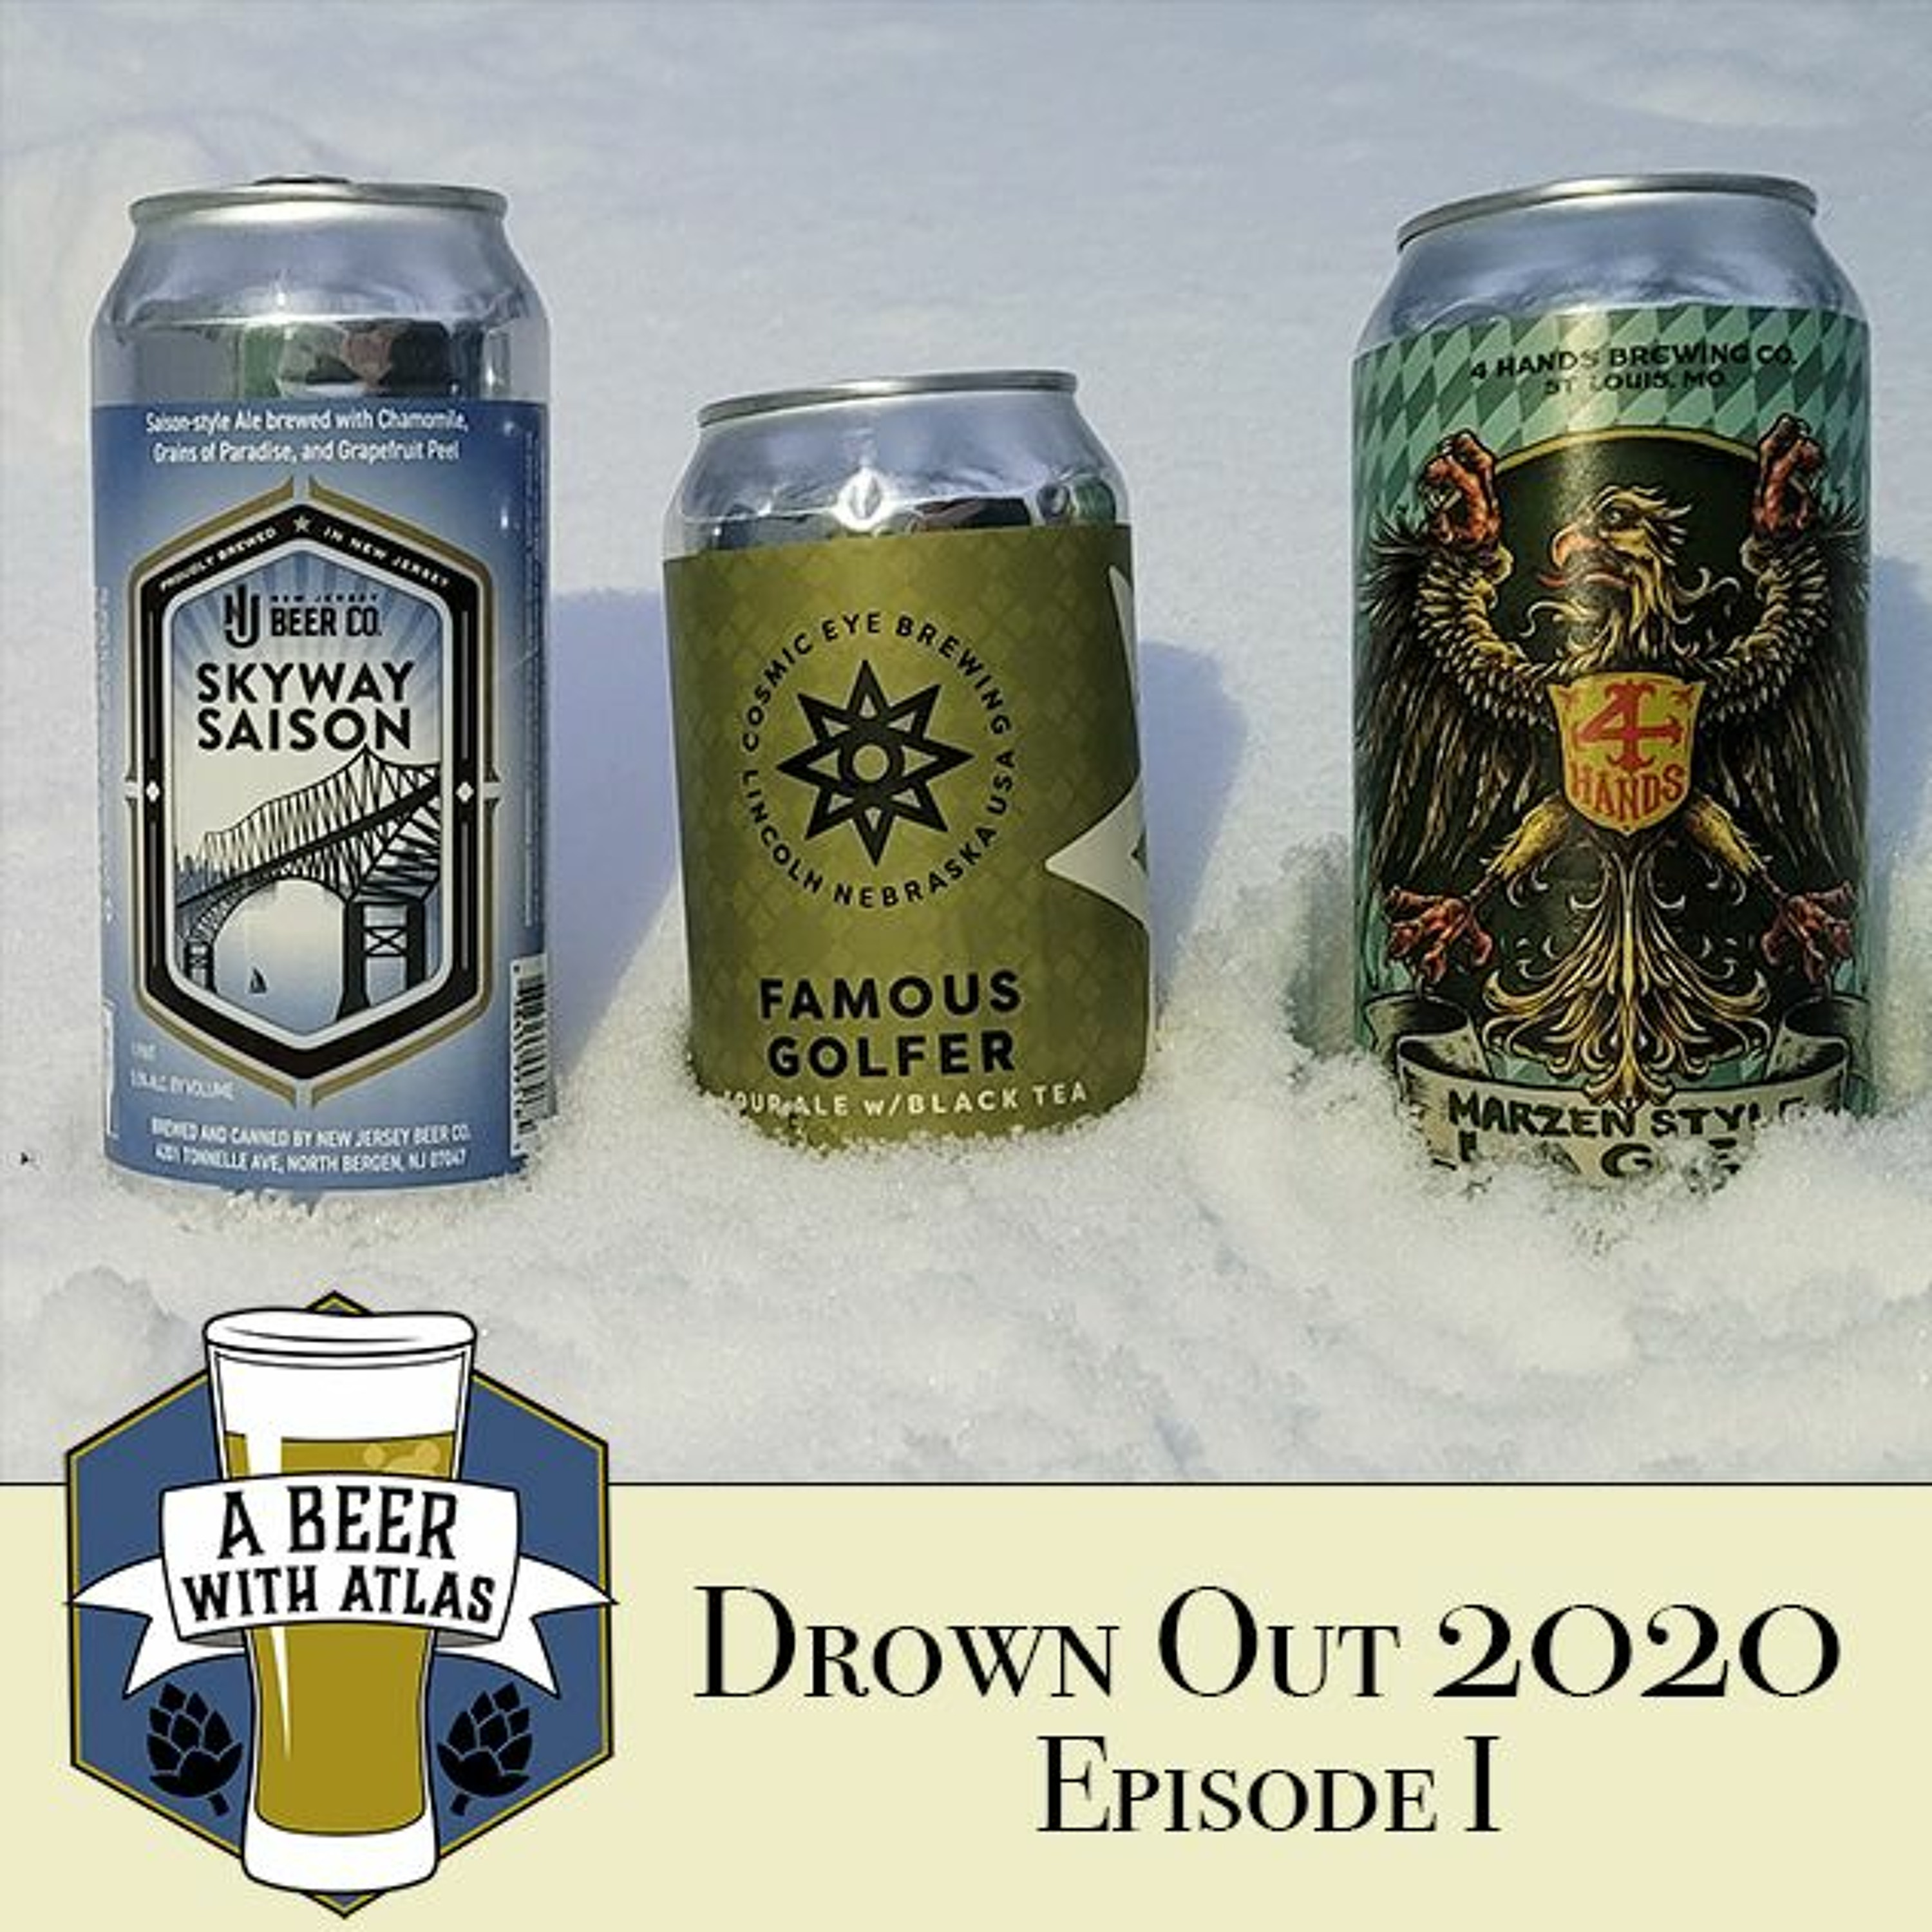 Drown Out 2020 - Beer With Atlas 123 - the original travel nurse craft beer podcast